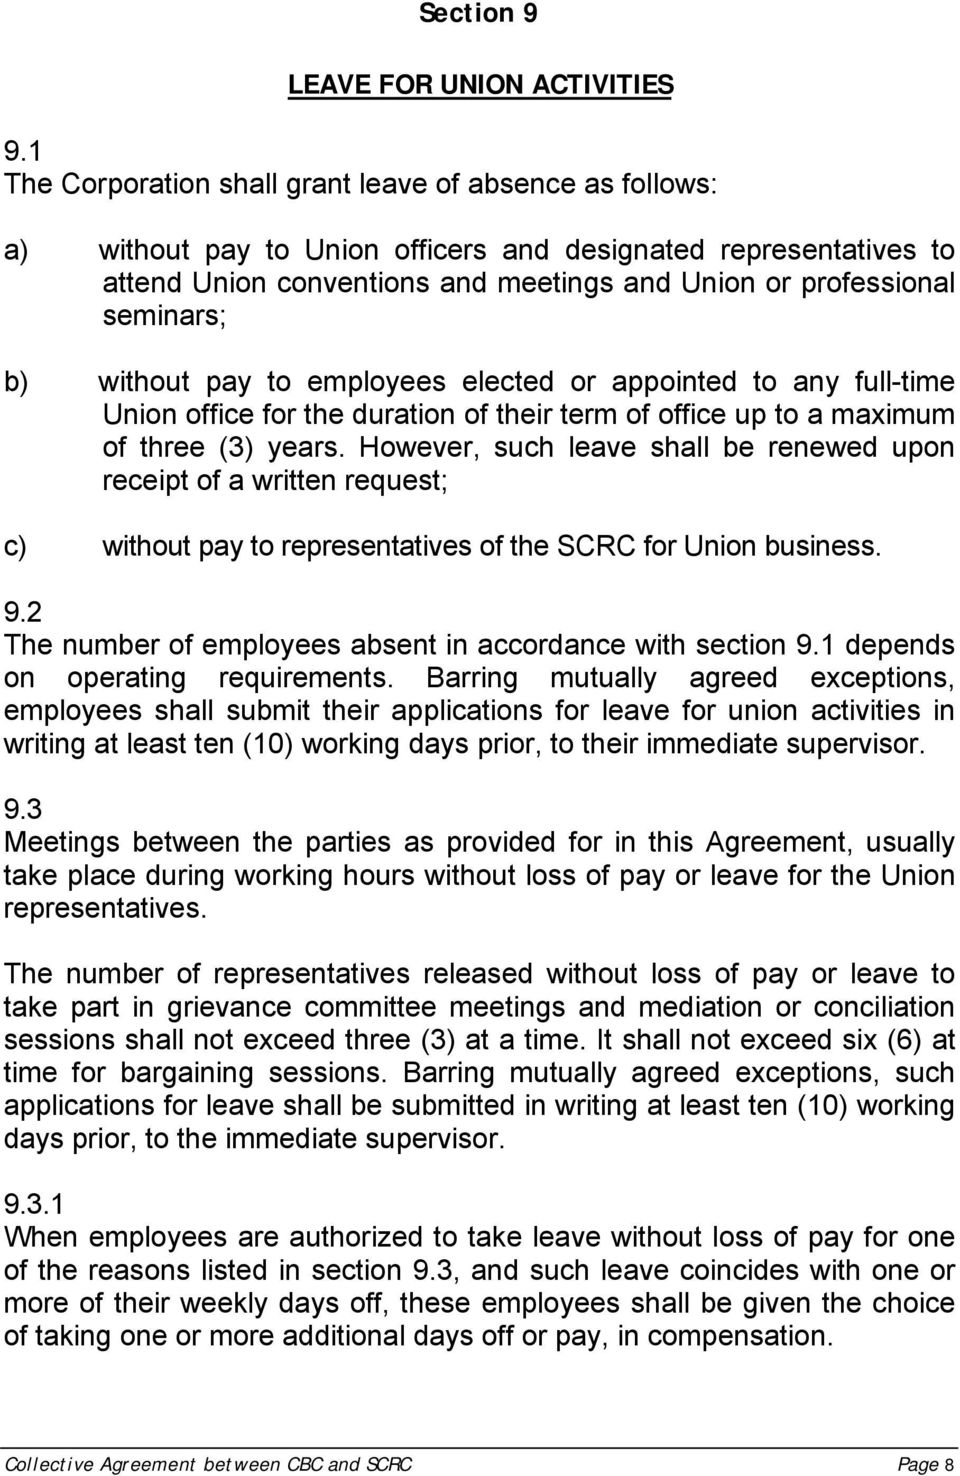 b) without pay to employees elected or appointed to any full-time Union office for the duration of their term of office up to a maximum of three (3) years.